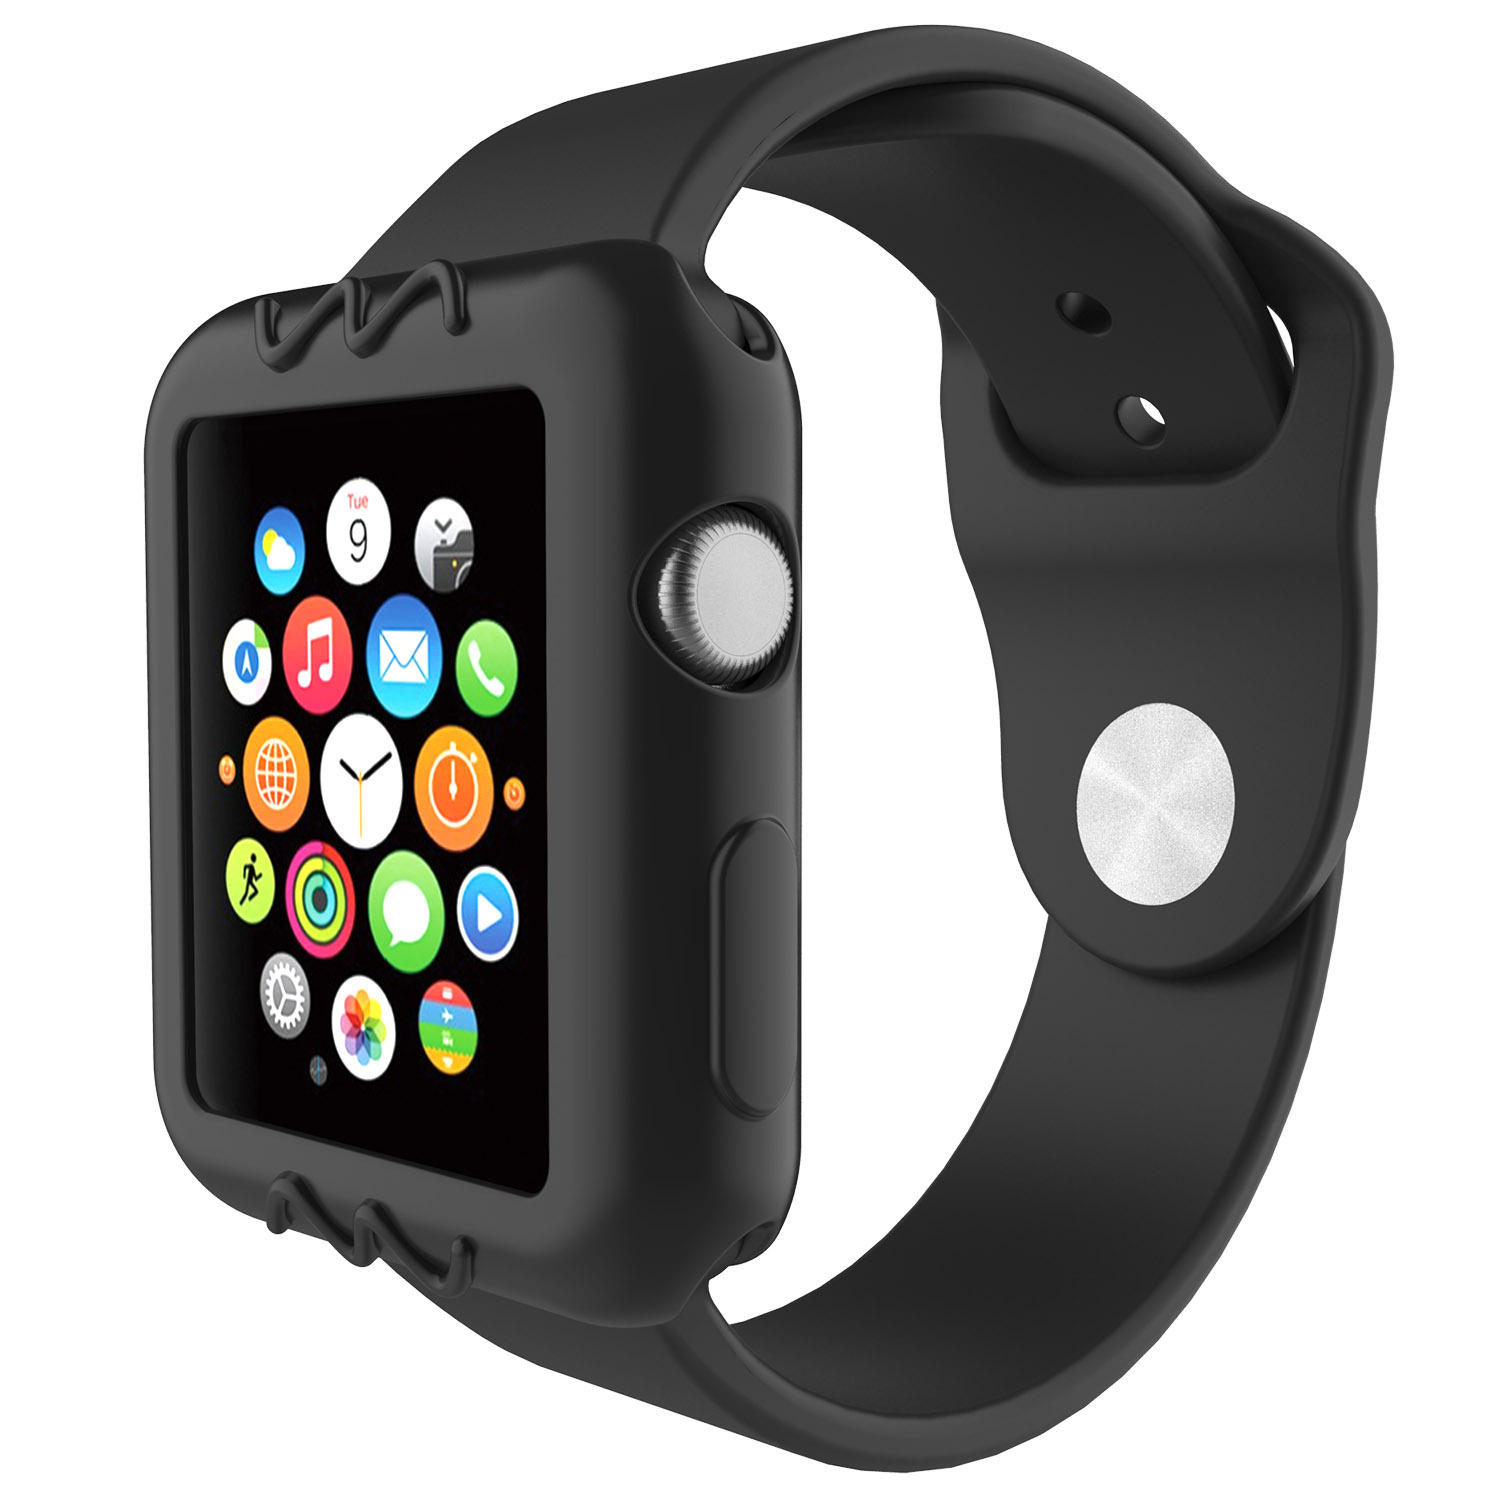 low priced 162d3 54d58 Universal Silicone Scratch Resistant Protective Watch Case For Apple Watch  Series 1/2/3 38mm/42mm